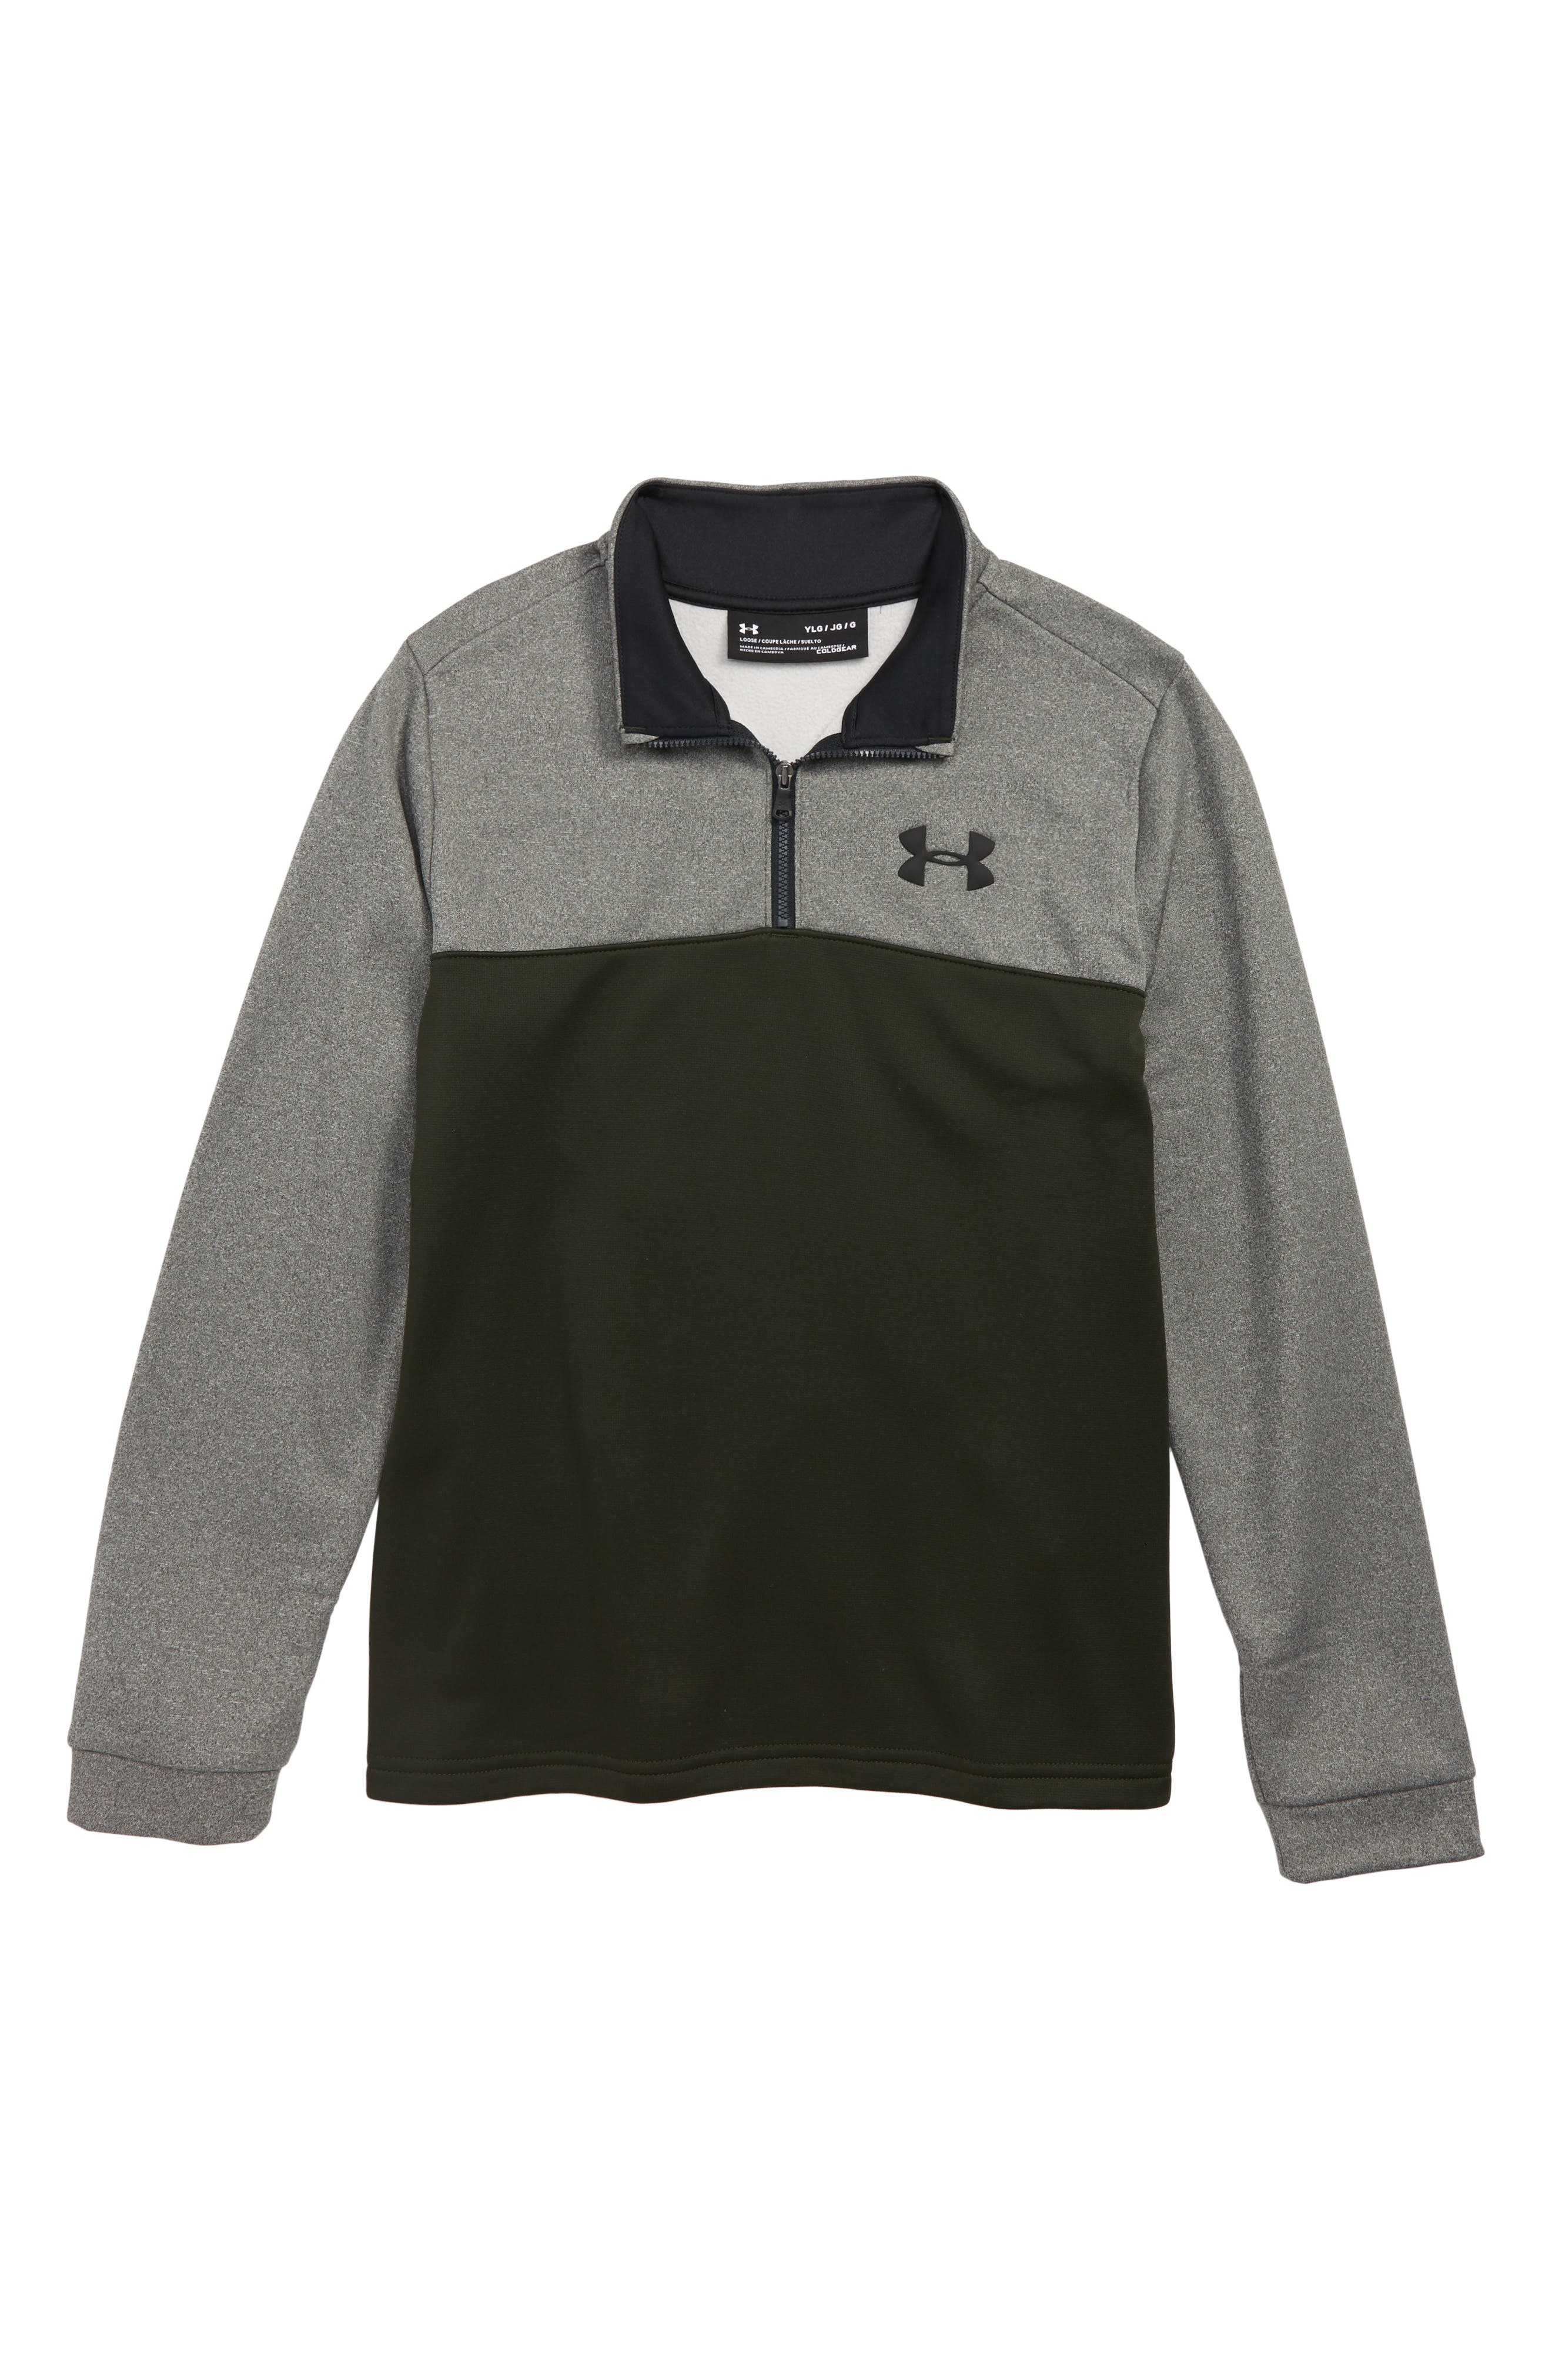 Performance Quarter Zip Pullover,                             Main thumbnail 1, color,                             GREEN/ BLACK